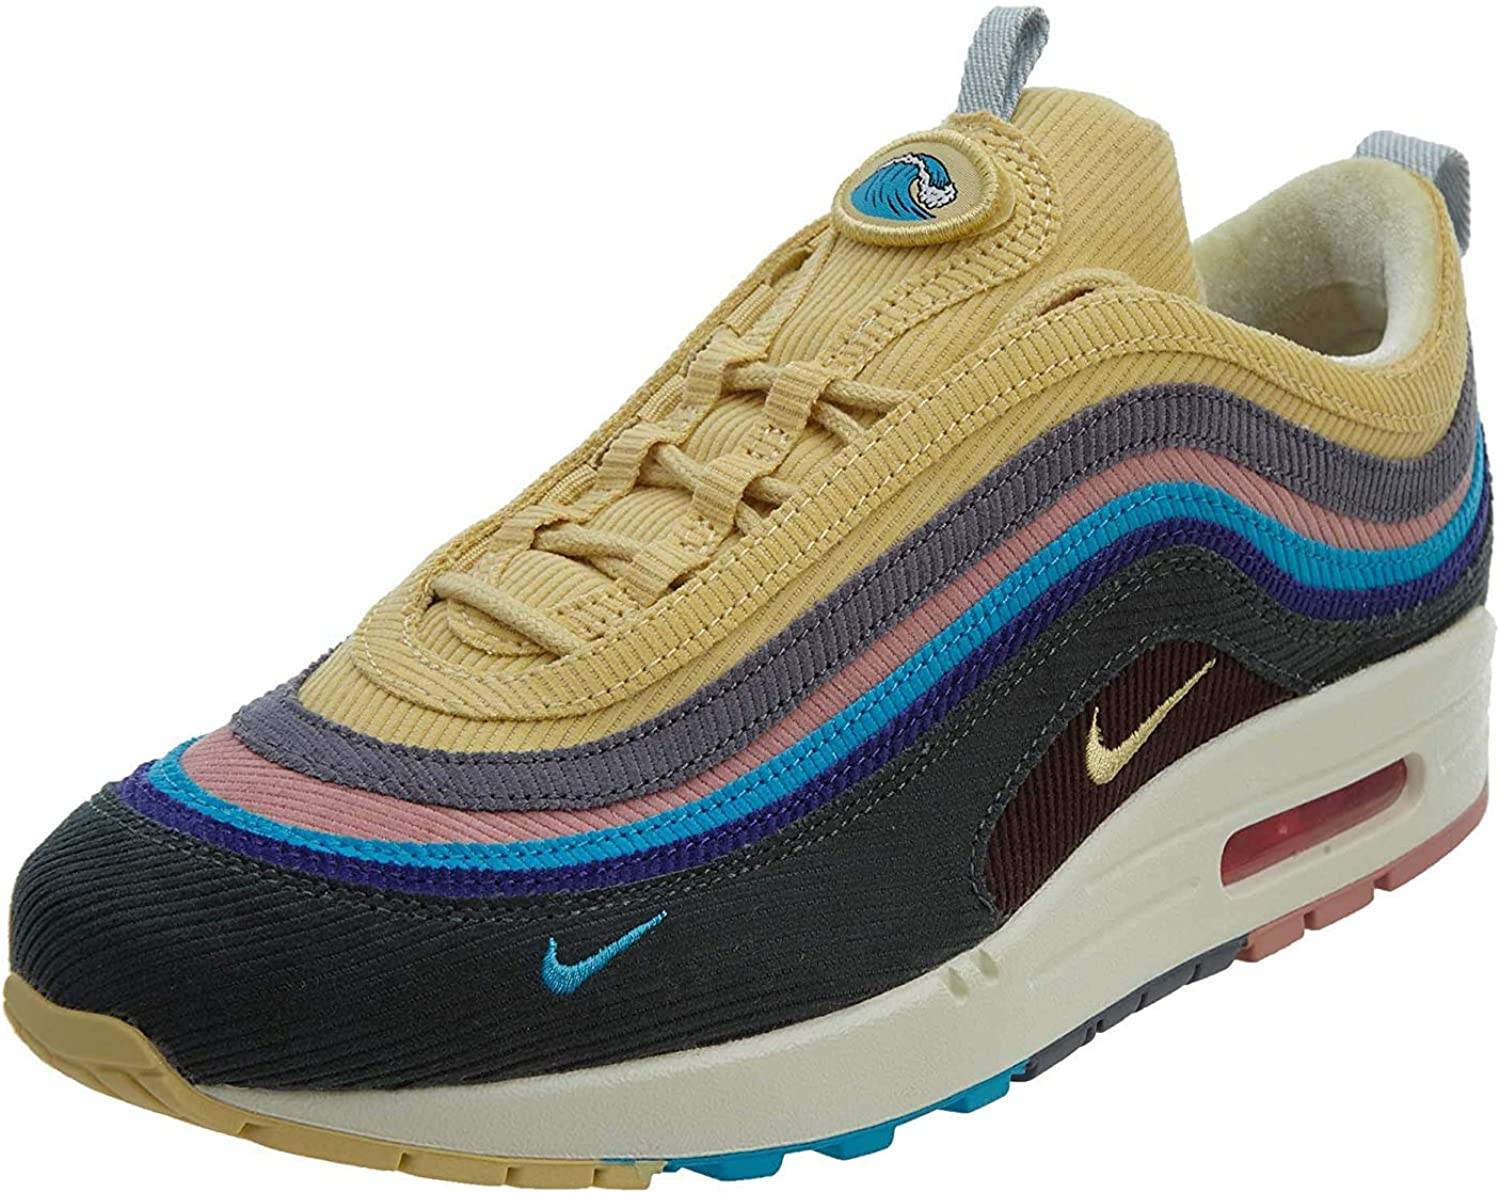 AIR MAX 1/97 VF SW 'Sean Wotherspoon